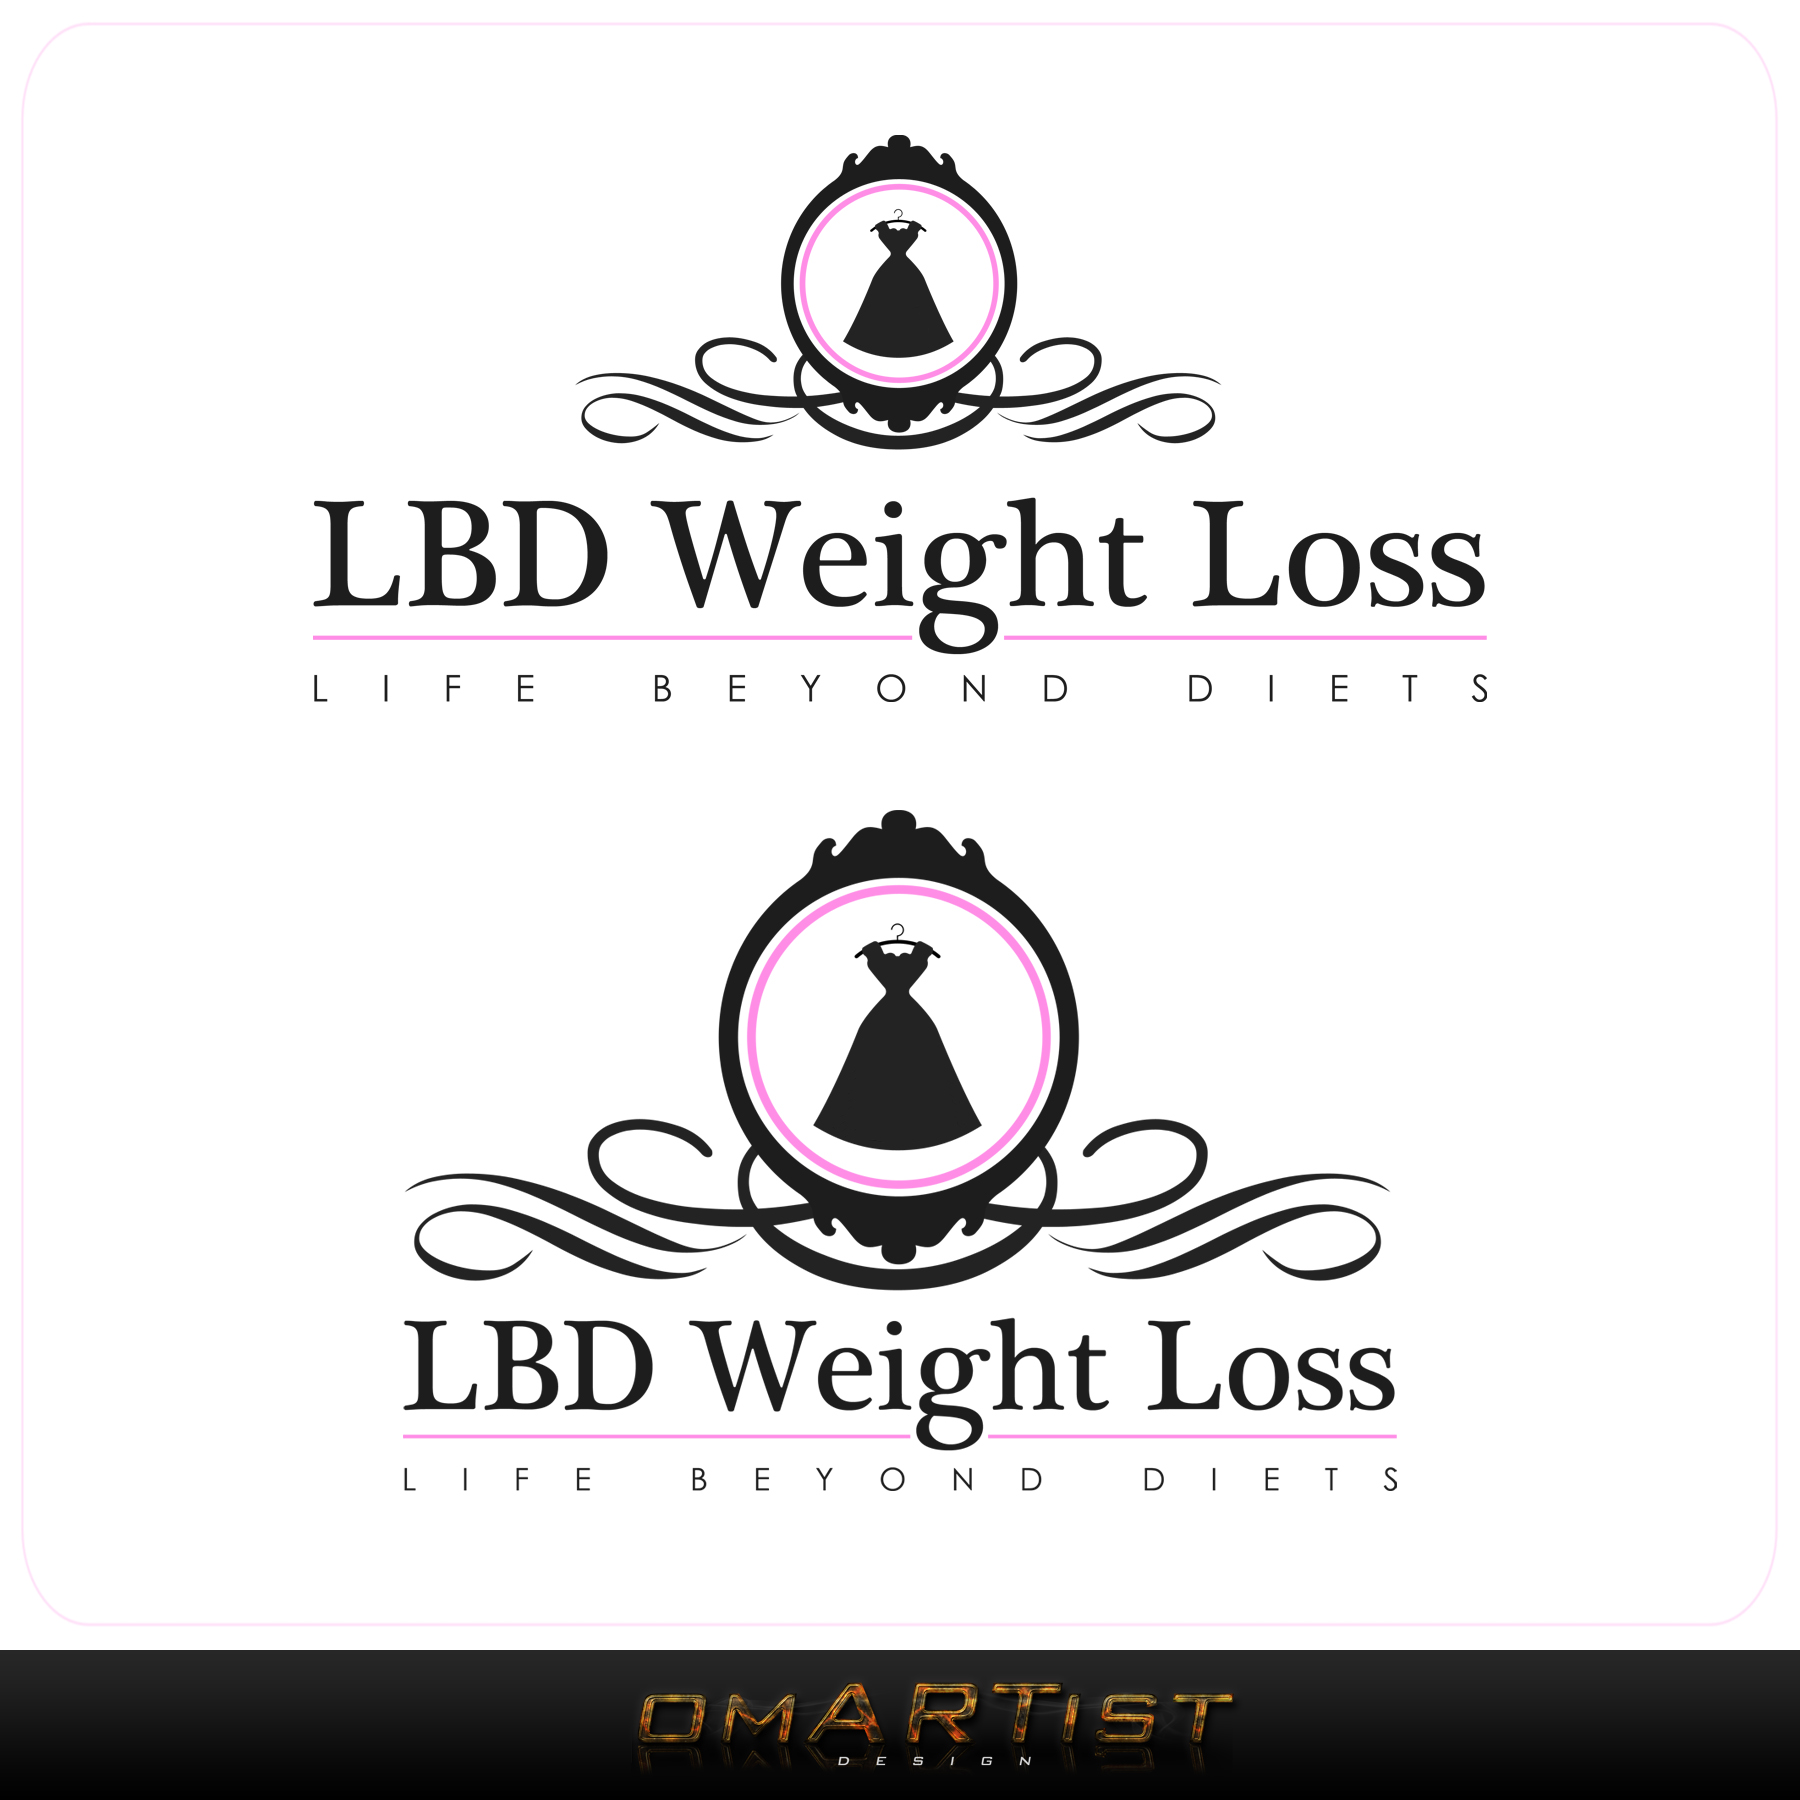 Logo Design by omARTist - Entry No. 68 in the Logo Design Contest Imaginative Logo Design for LBD Weight Loss.